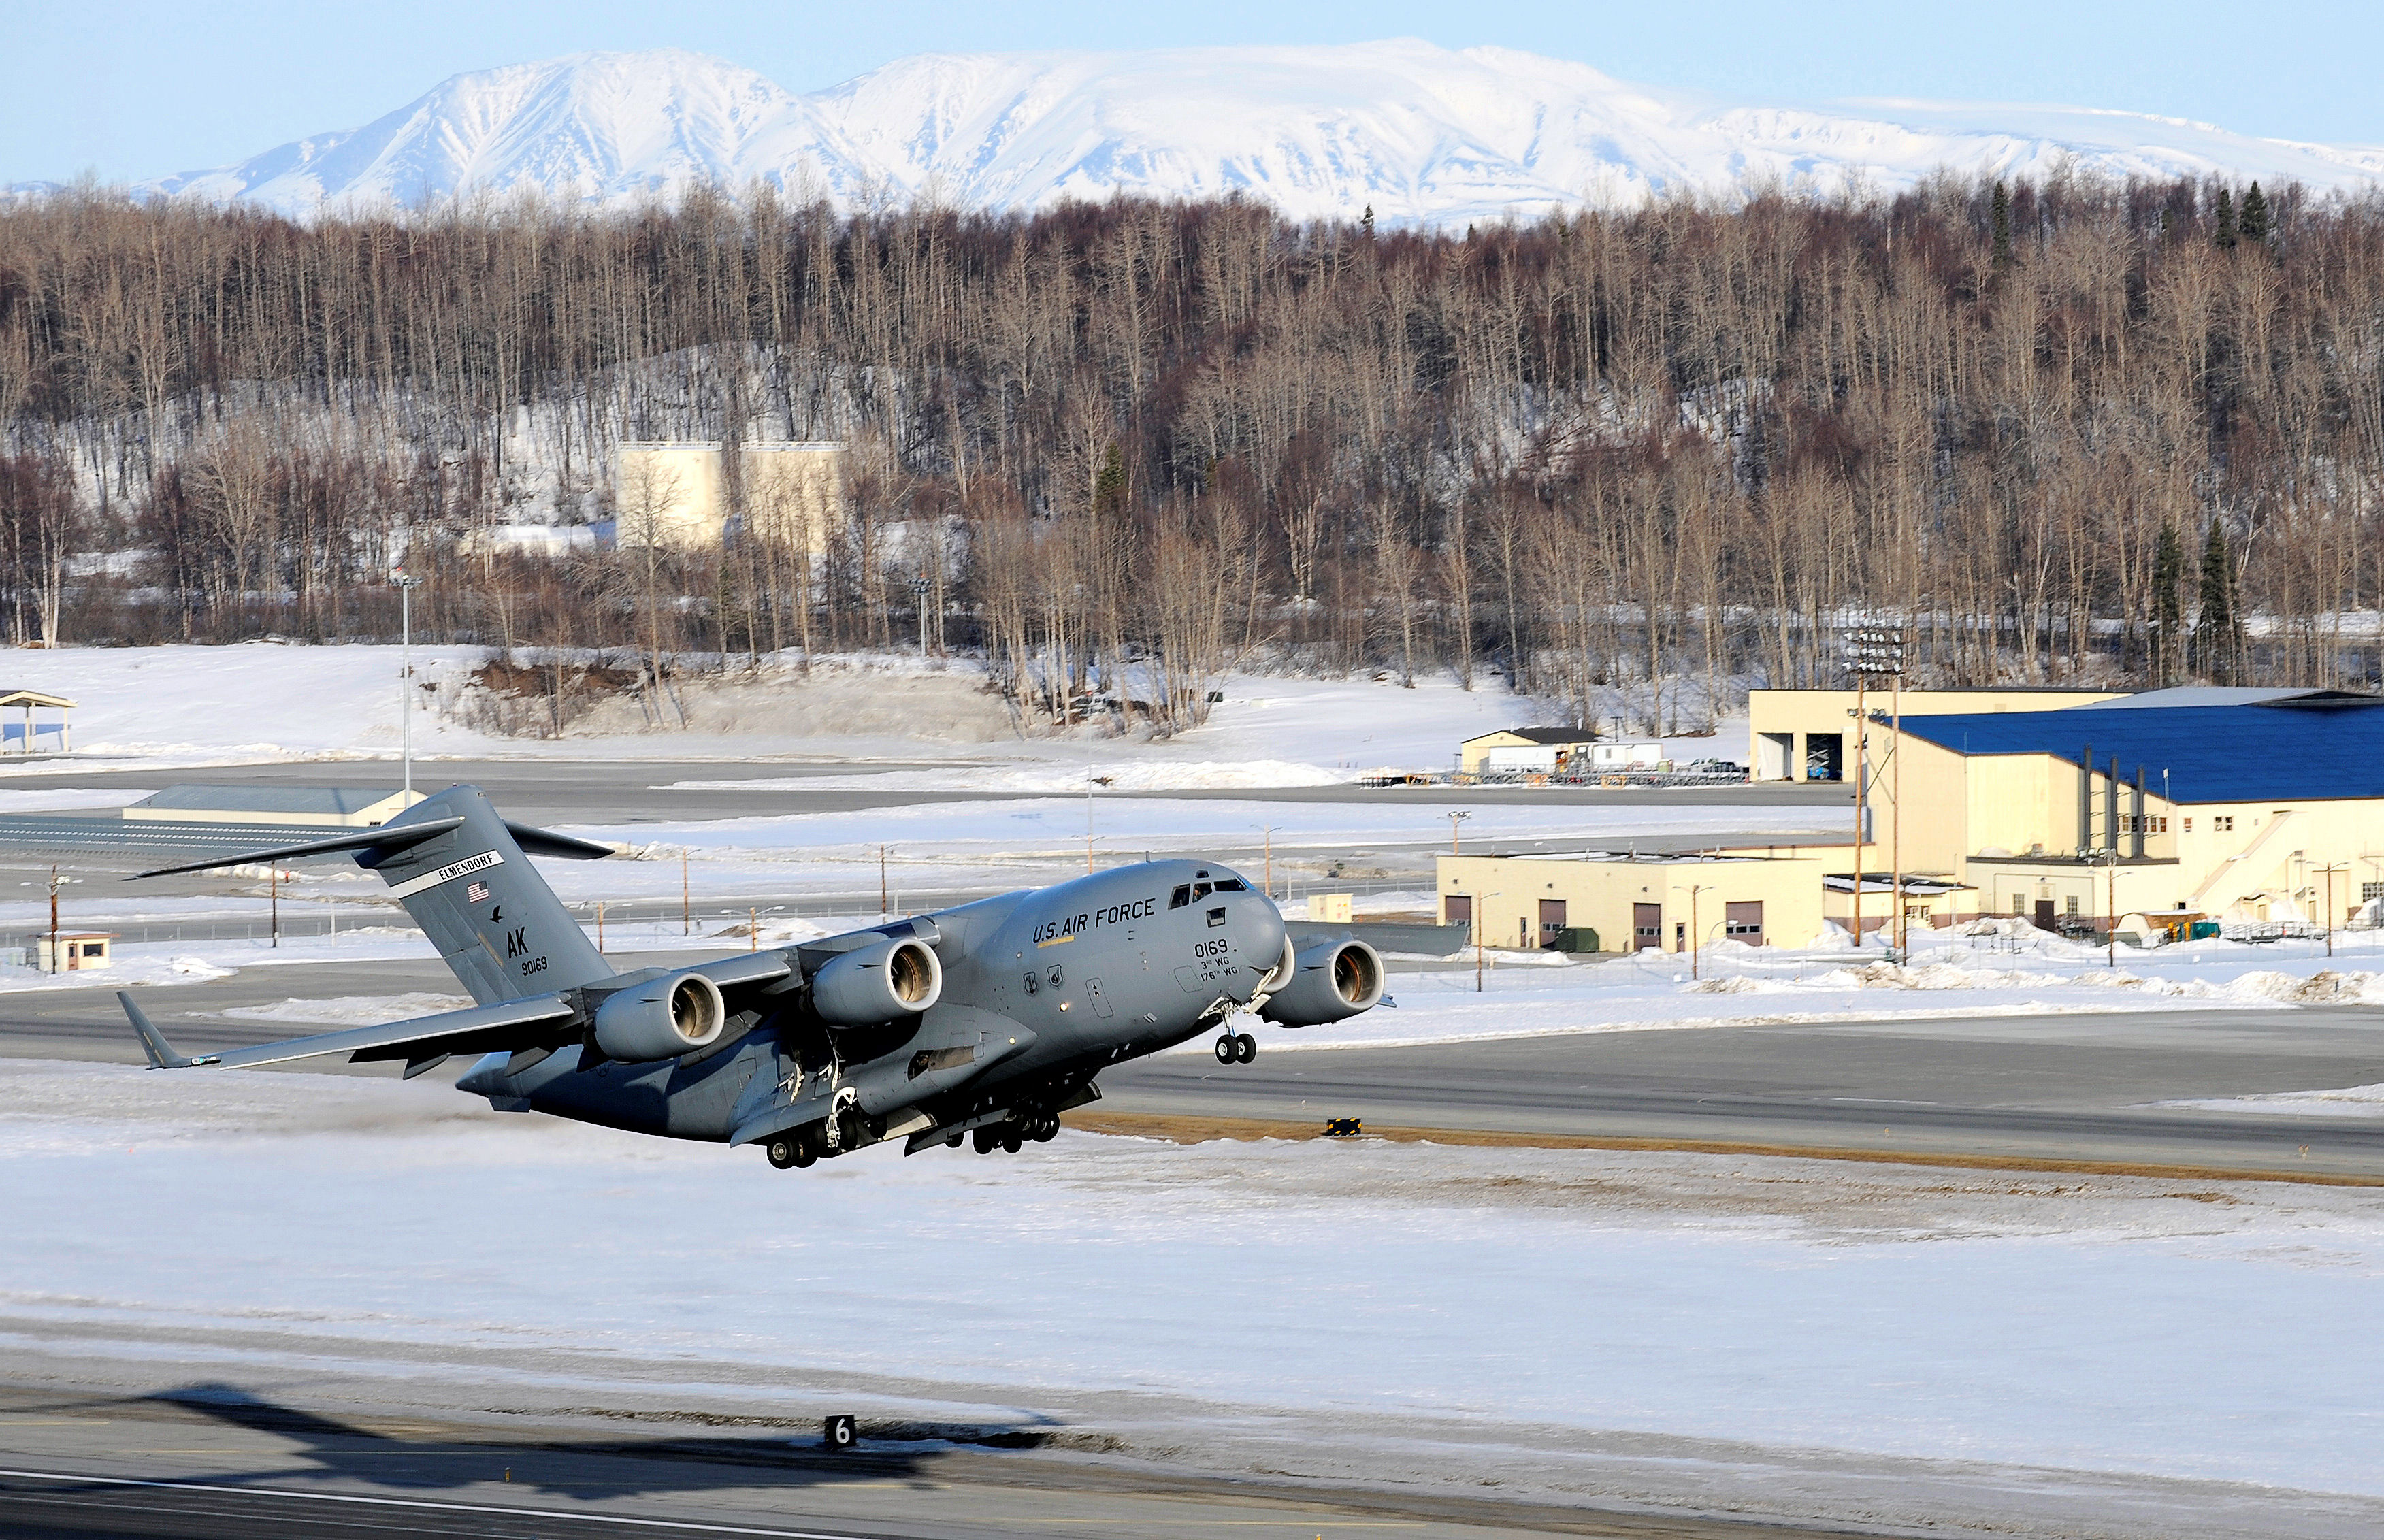 A C-17 Globemaster III takes off from Elmendorf Air Force Base March 26.  Col. Thomas Bergeson, 3rd Wing commander and F-22 Raptor pilot, was behind the controls of the aircraft for the first time. The flight included a KC-135 Stratotanker refuel, tactical arrivals and departures at Allen Army Air Field and low-level flying.  (U.S. Air Force photo/Staff. Sgt. Brian Ferguson)